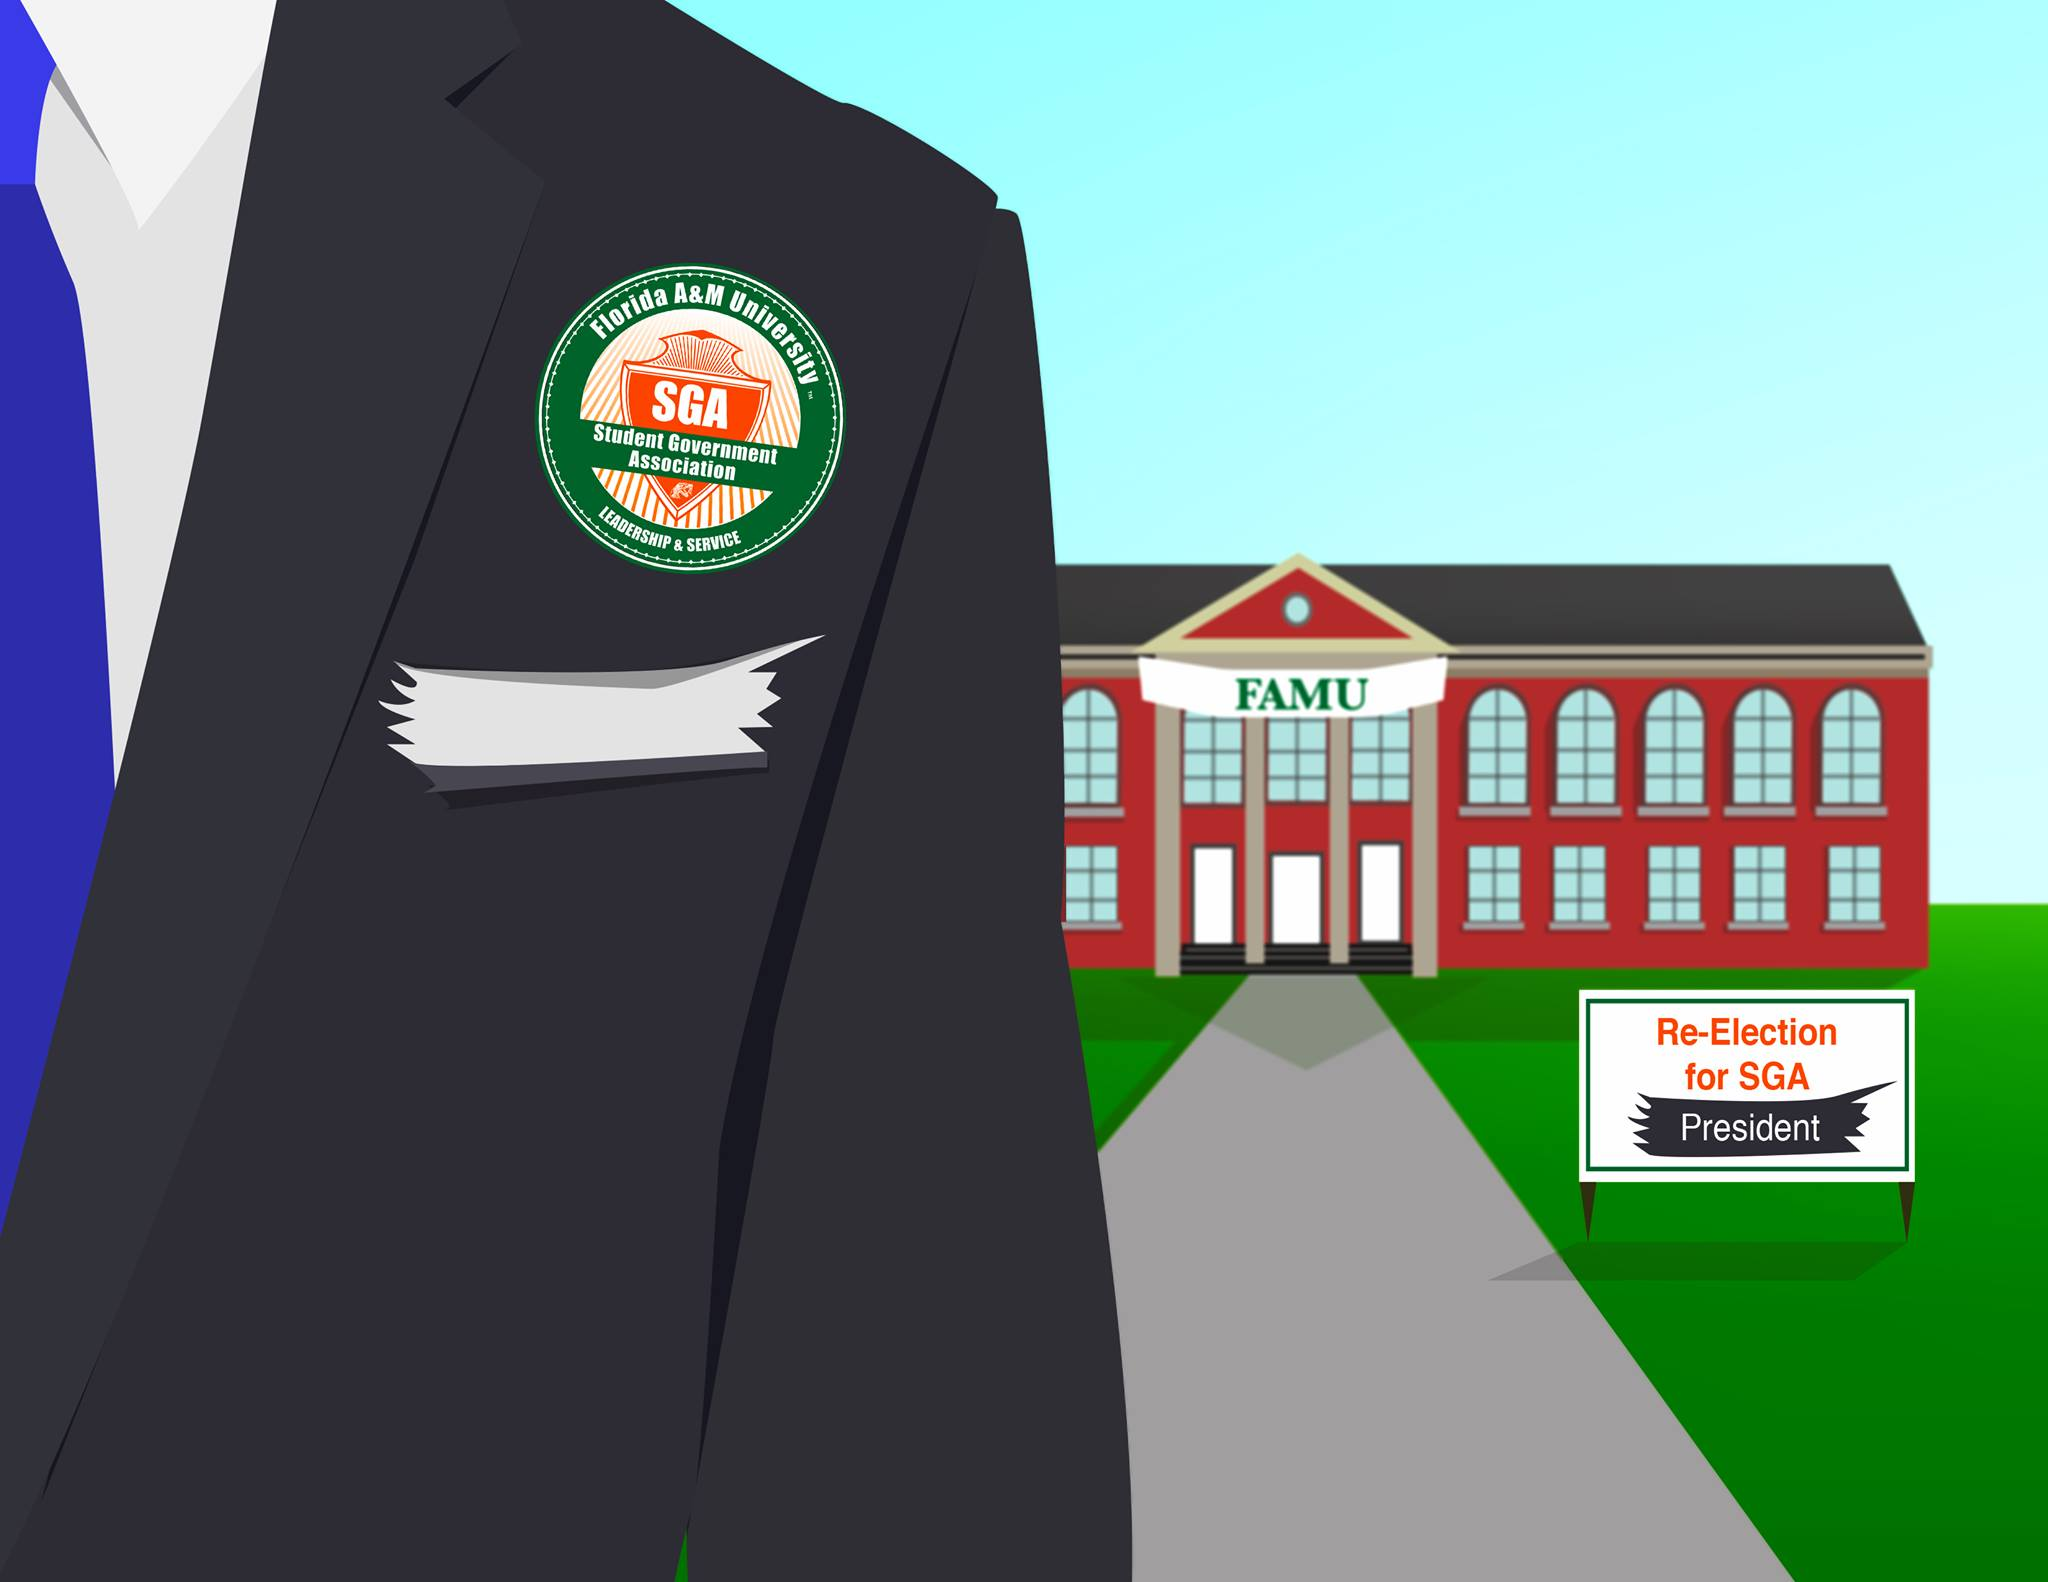 Is student government equivalent to real government? A FAMU lawsuit sparks discussion